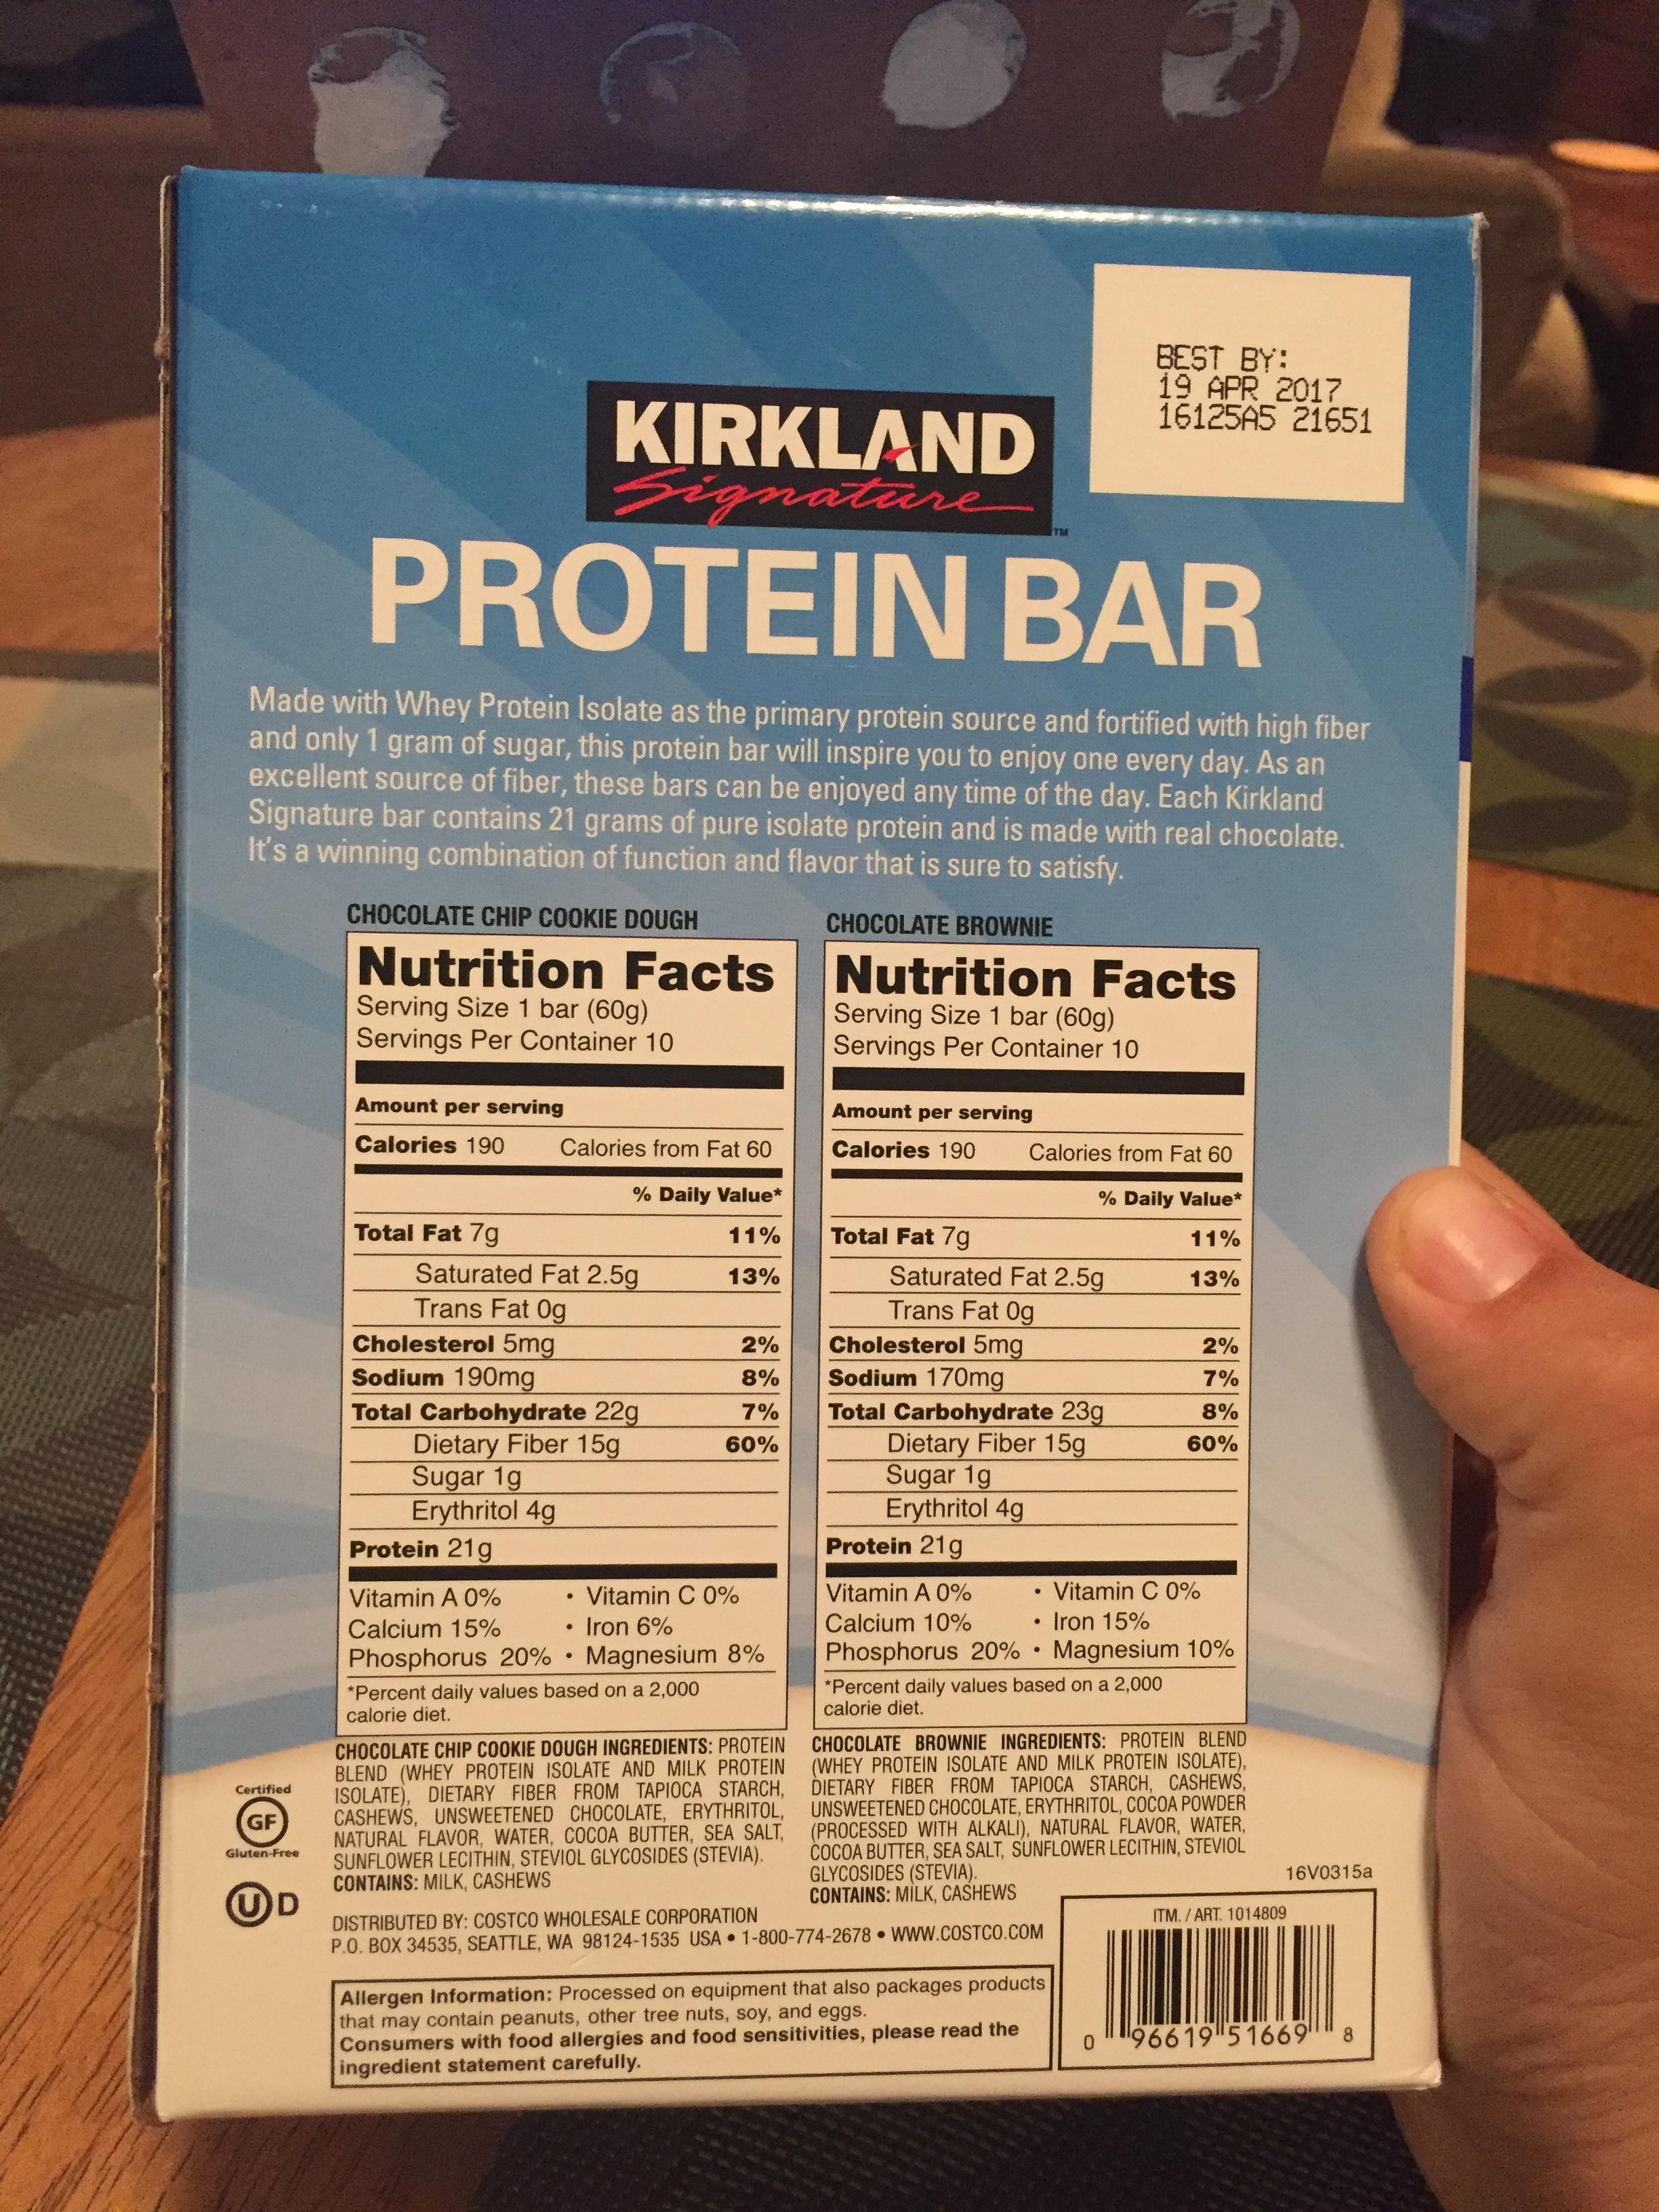 Kirkland Signature Protein Bars Bodybuilding Com Forums